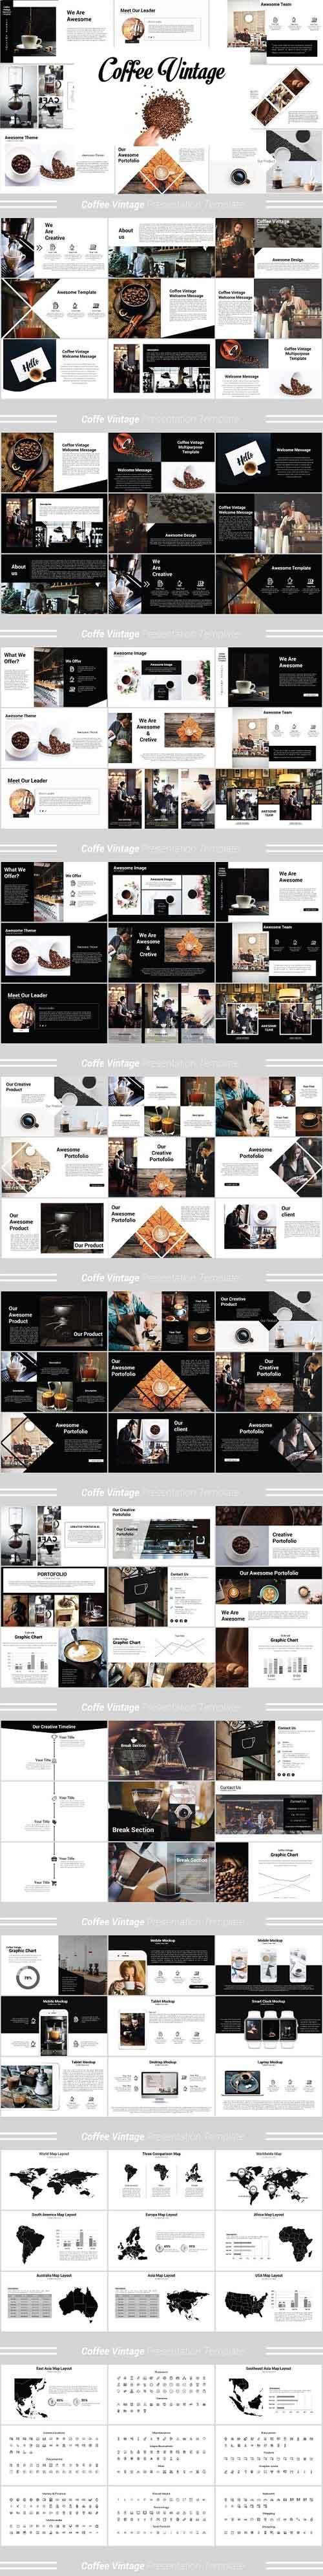 Coffee Vintage Powerpoint Template 1336183